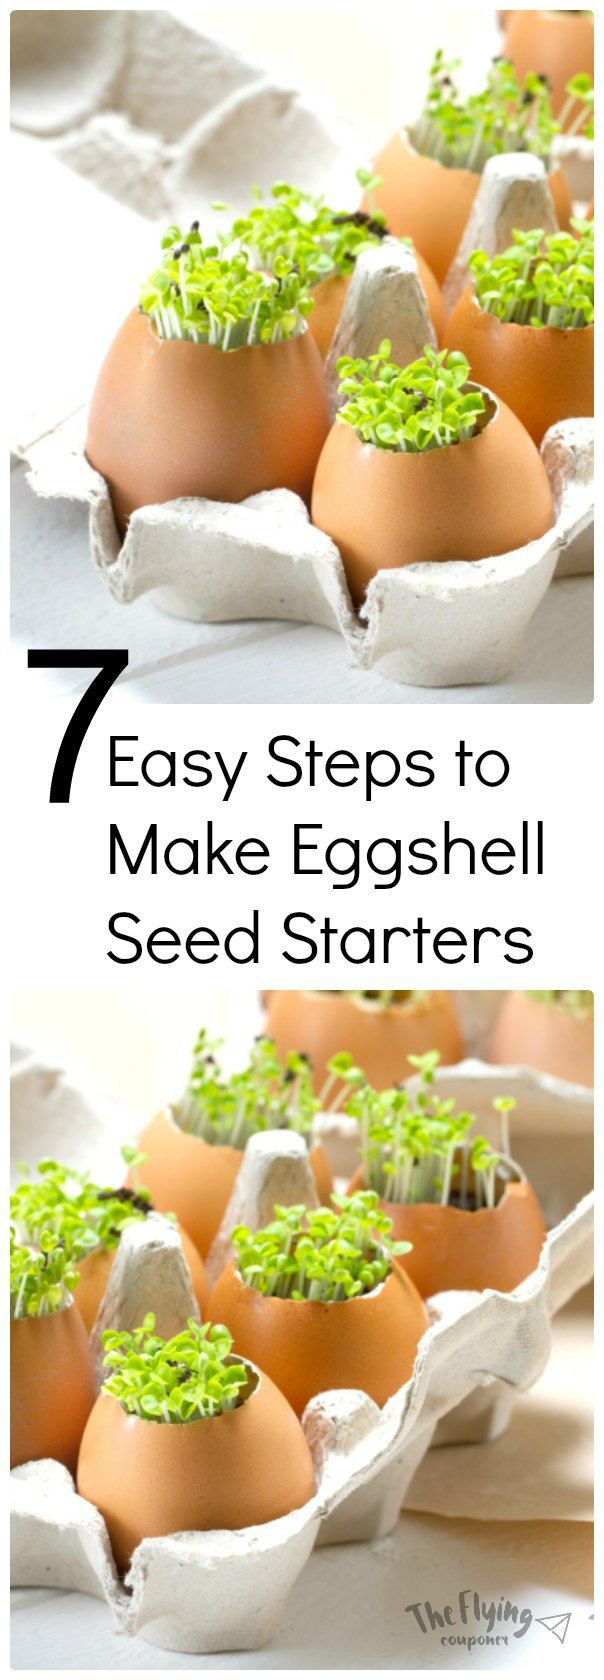 7 Easy Steps to Make Eggshell Seed Starters. DIY garden and gardening ideas and tips. Growing flowers, vegetables, and herbs for beginners. The Flying Couponer | Family. Travel. Saving Money.